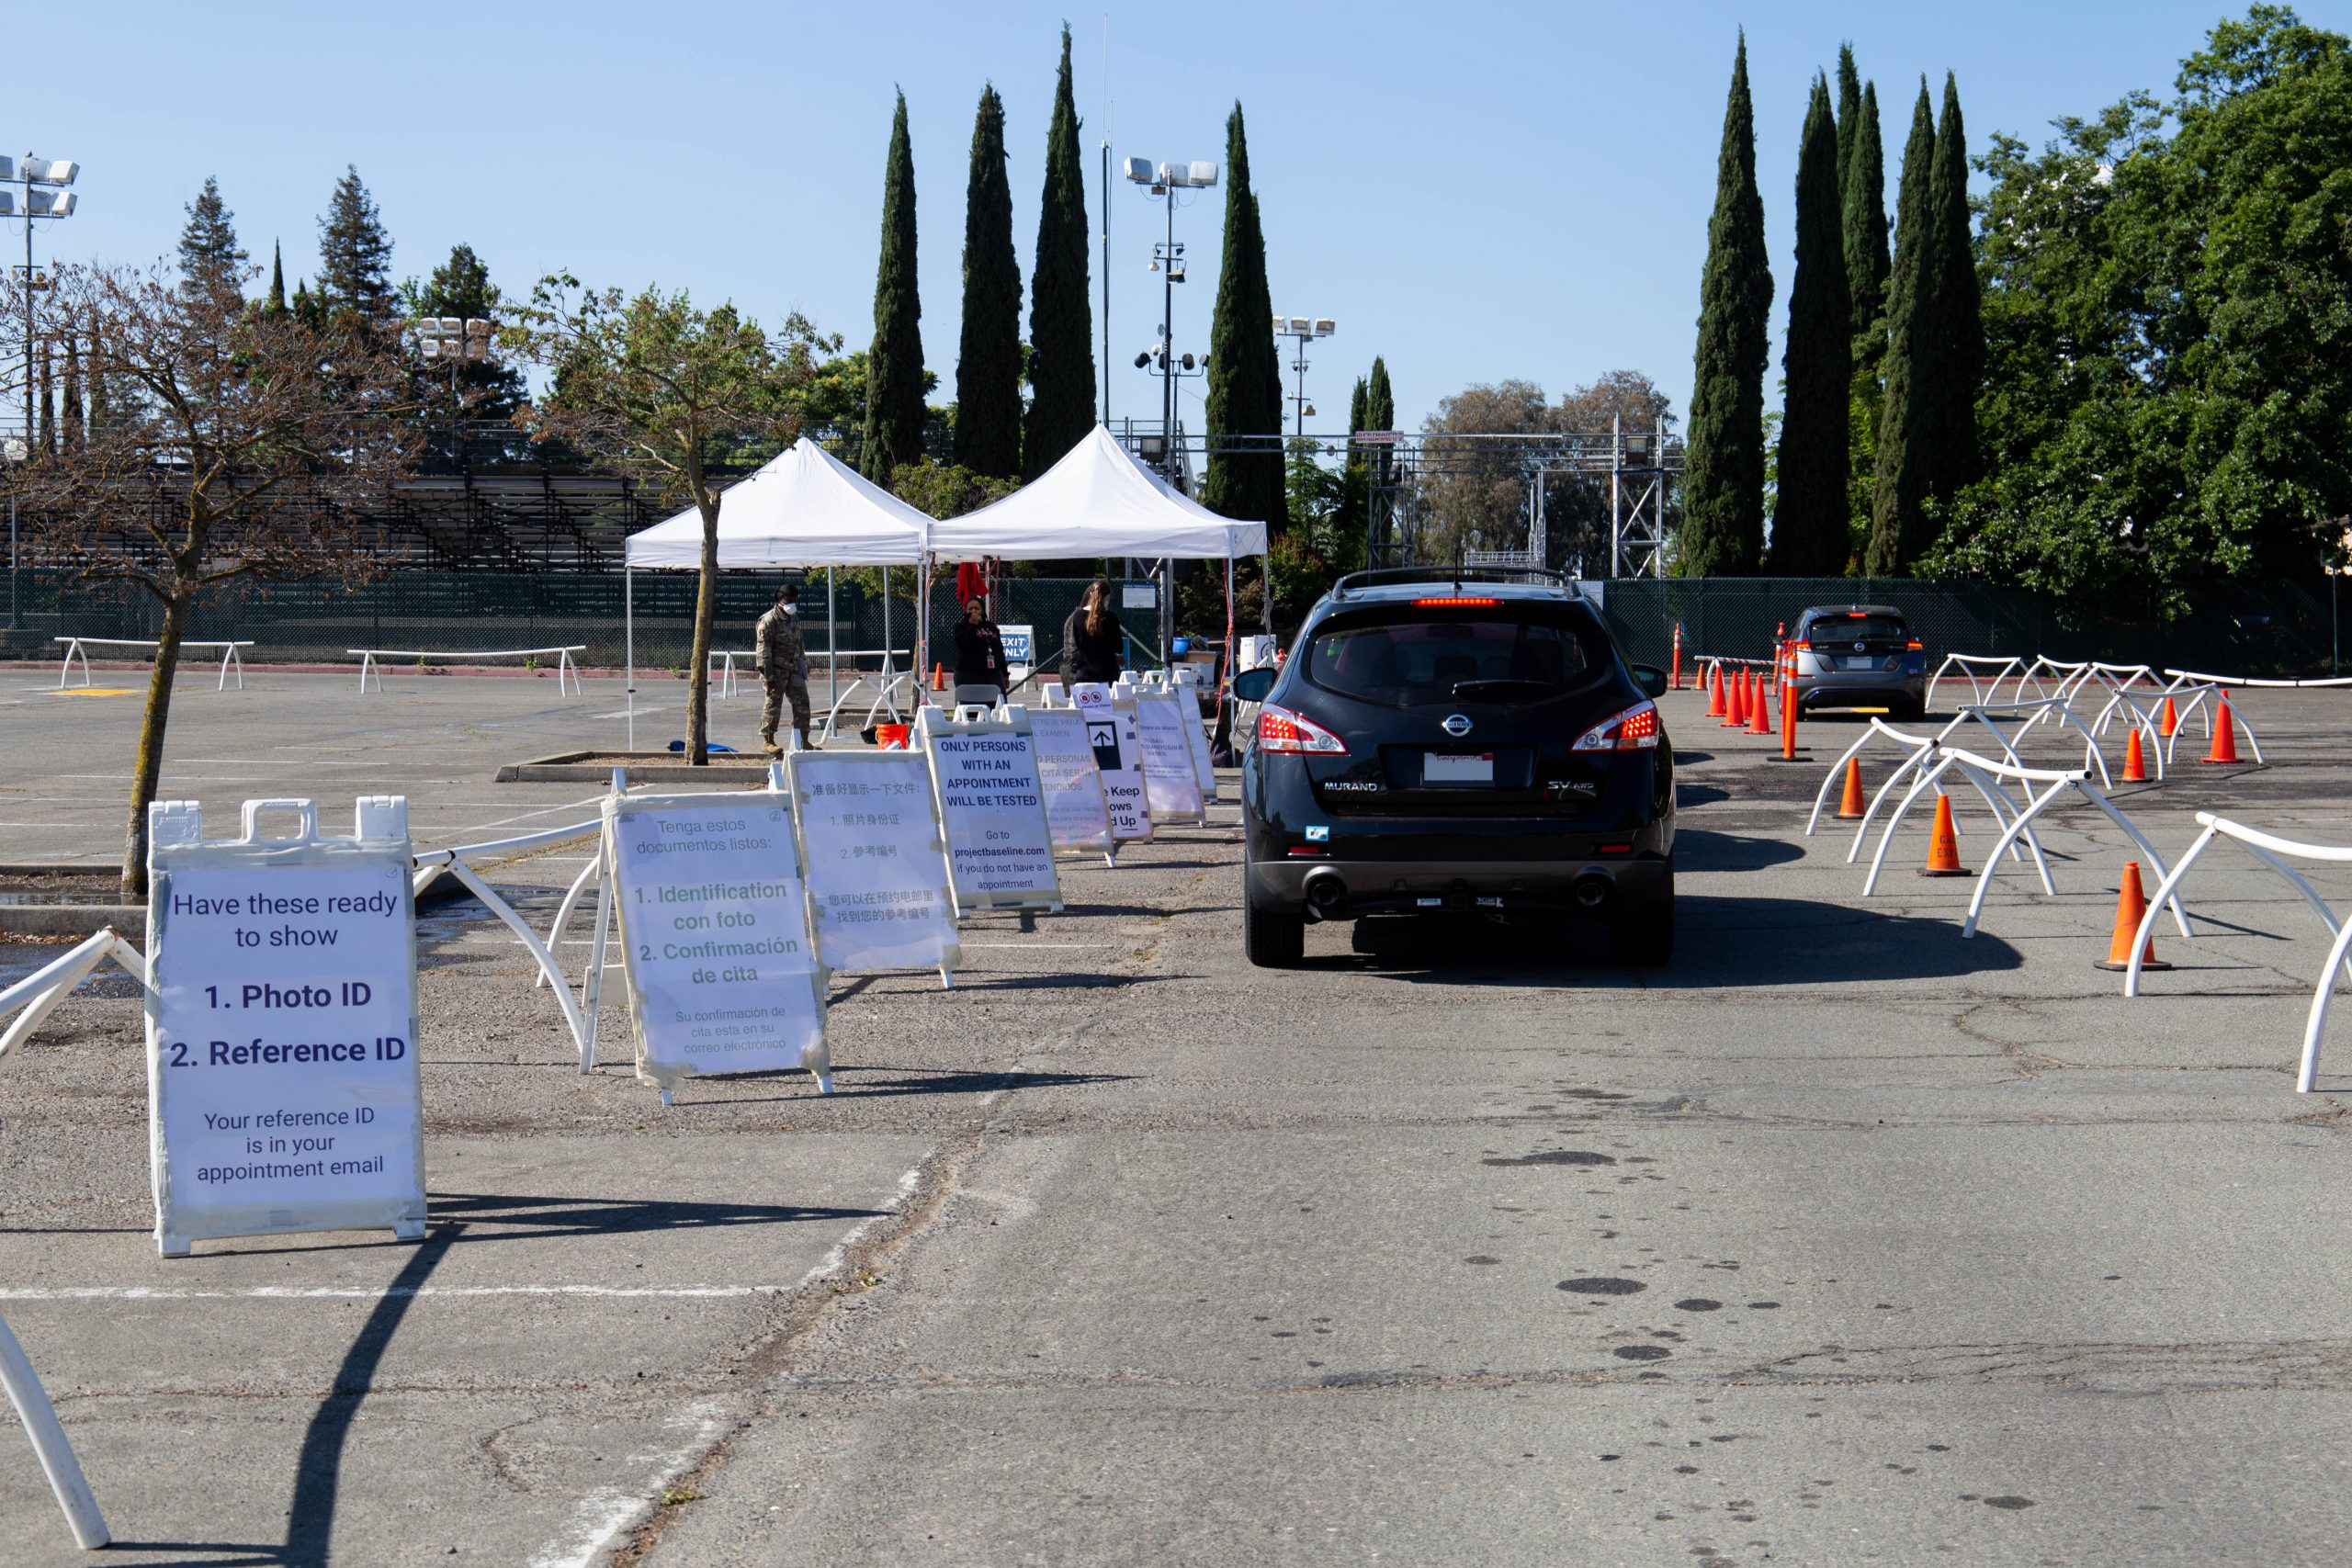 A car waiting in line for a covid-19 test. There are a-frame signs along the left with directions and pop up tents in the background.